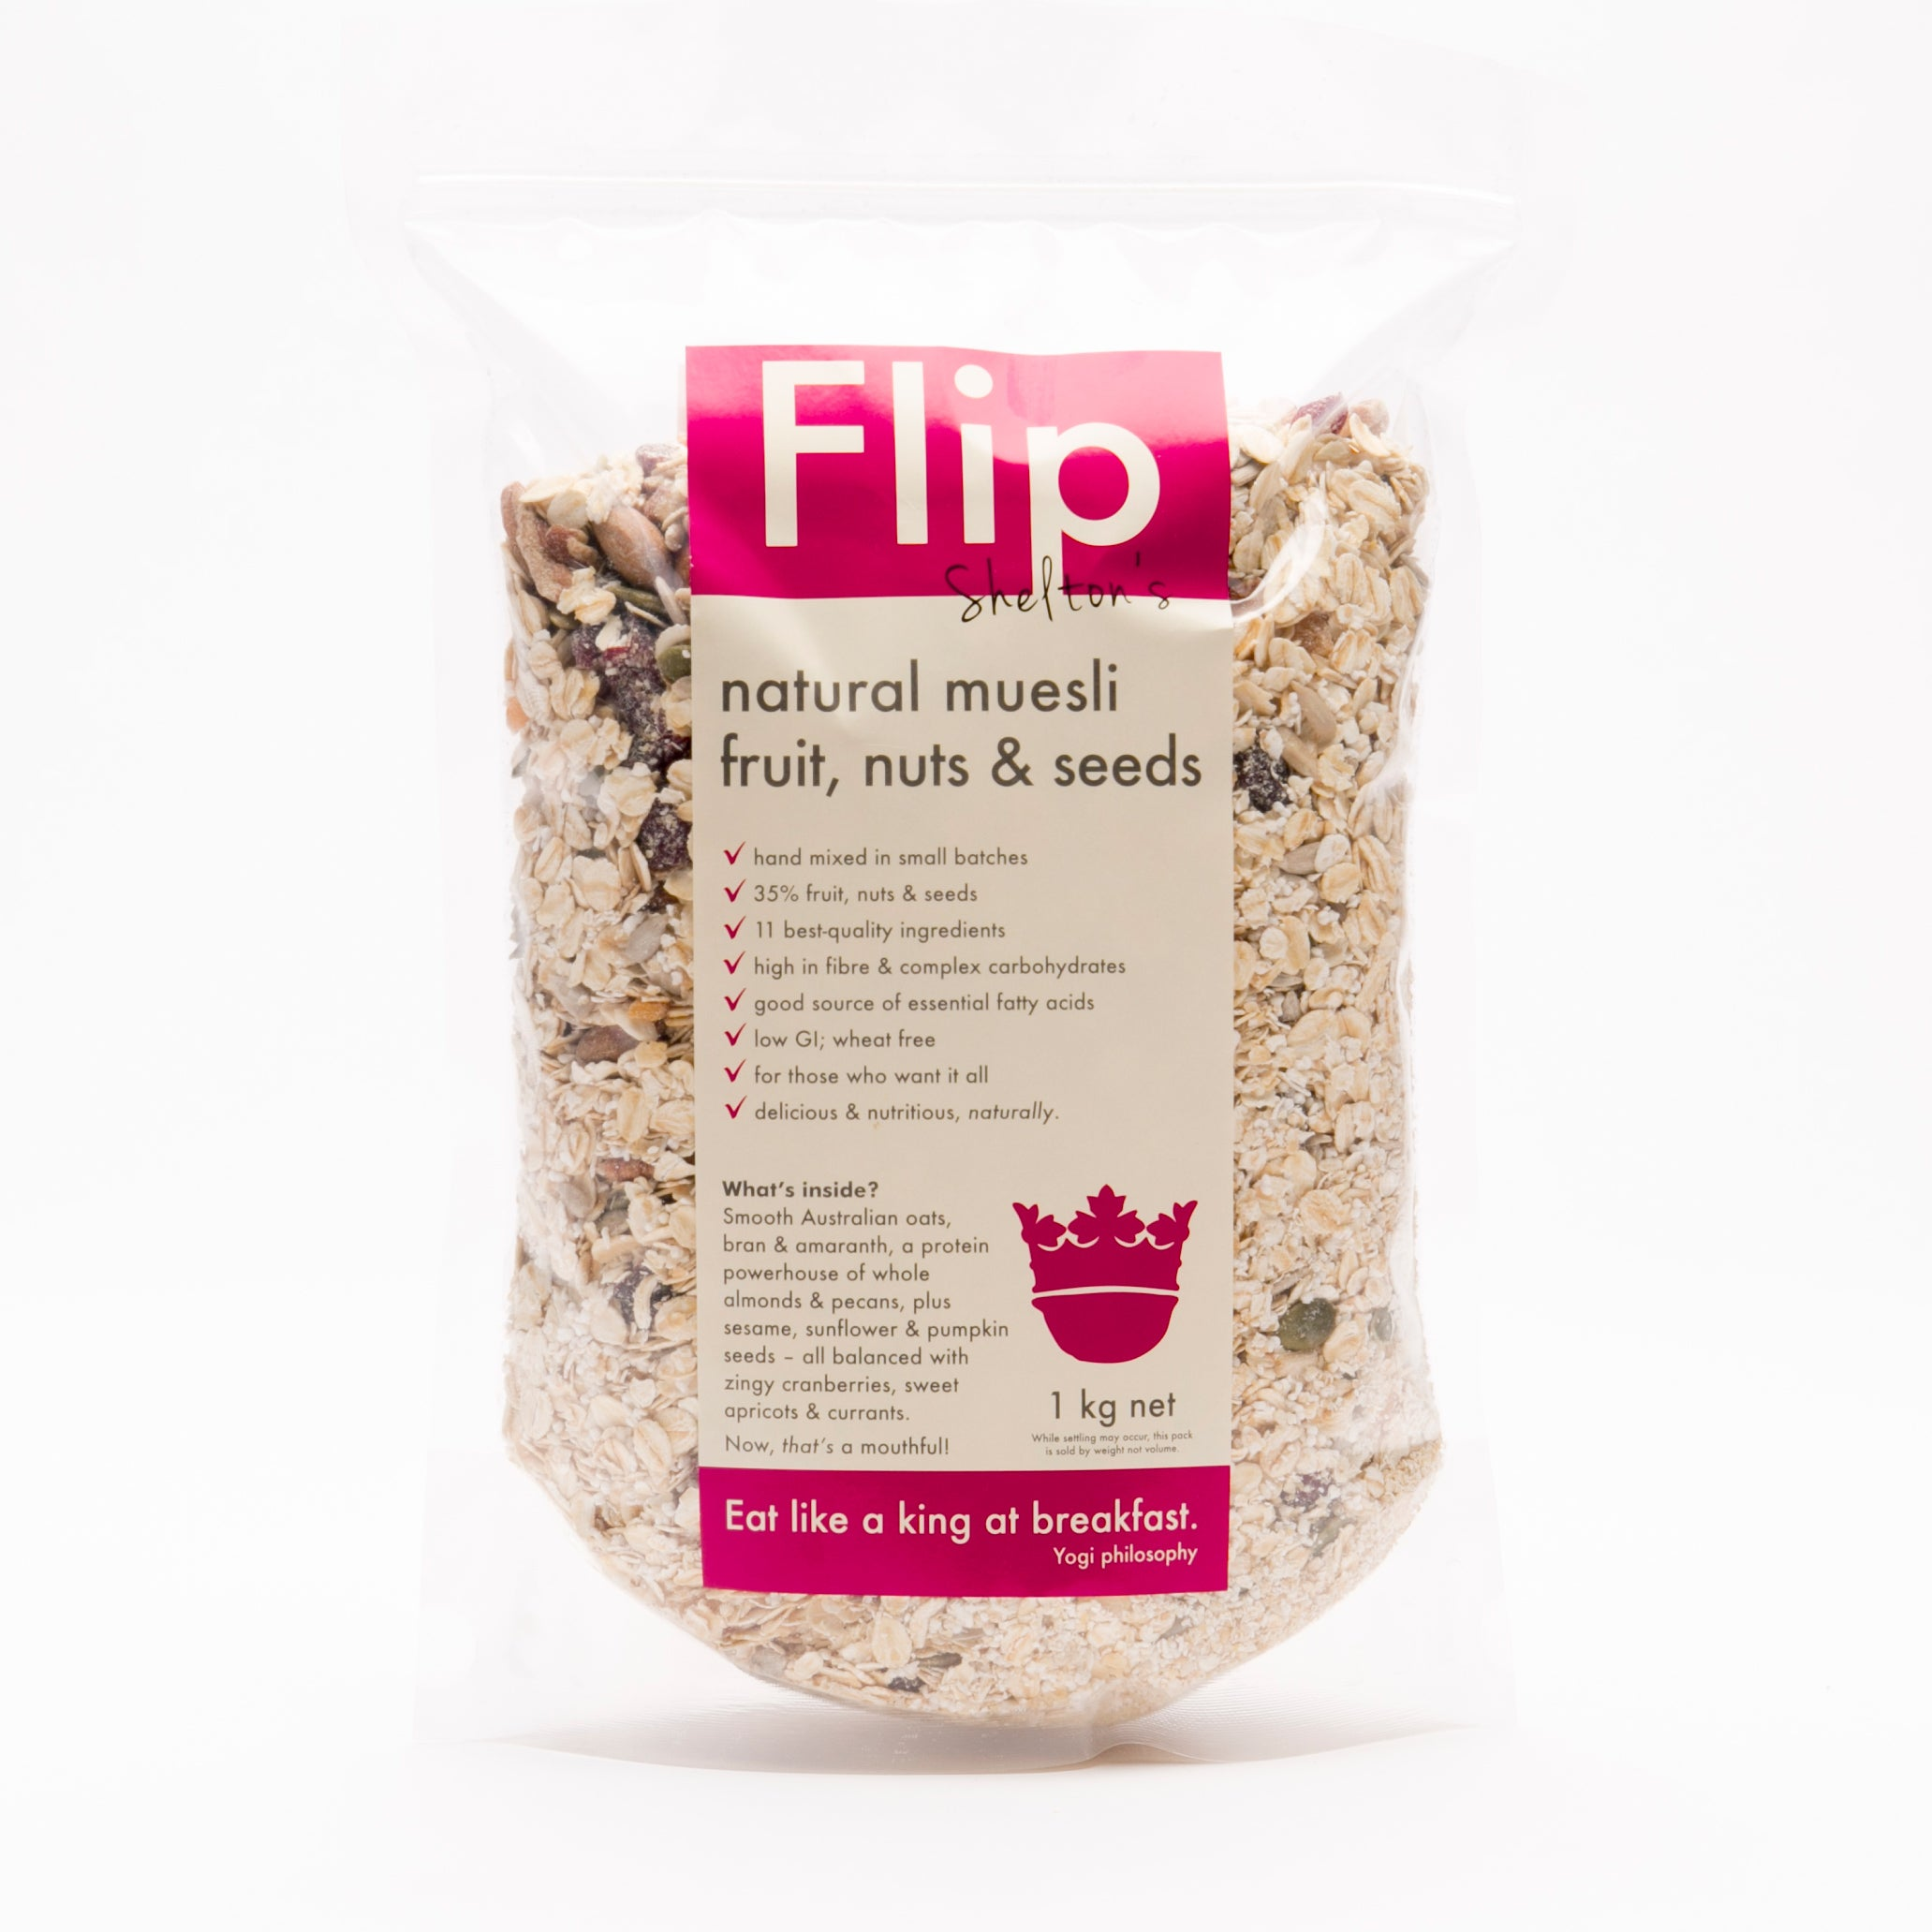 fruit, nuts & seeds natural muesli